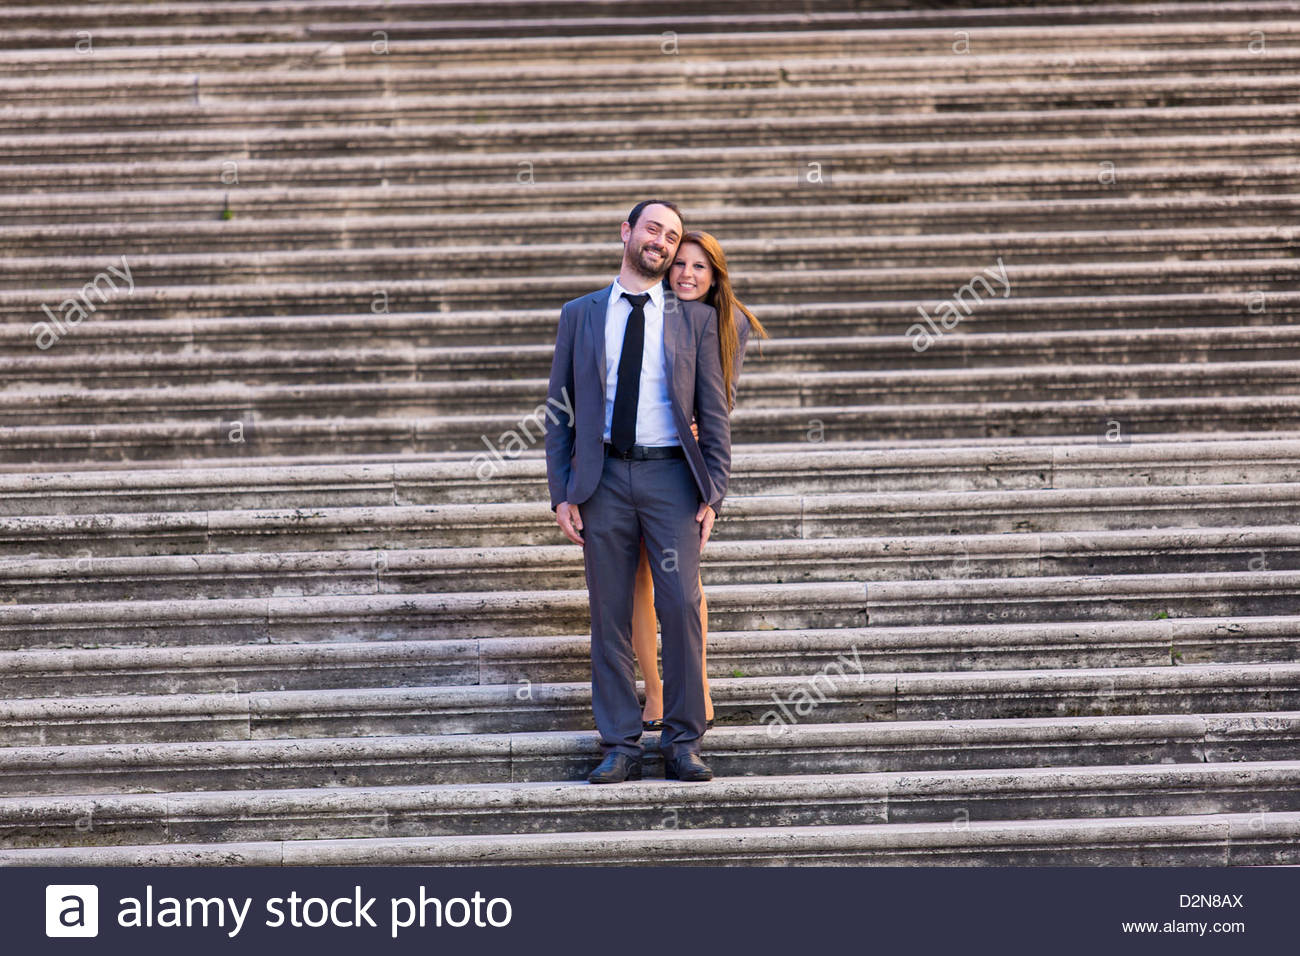 couple posing on a staircase - Stock Image